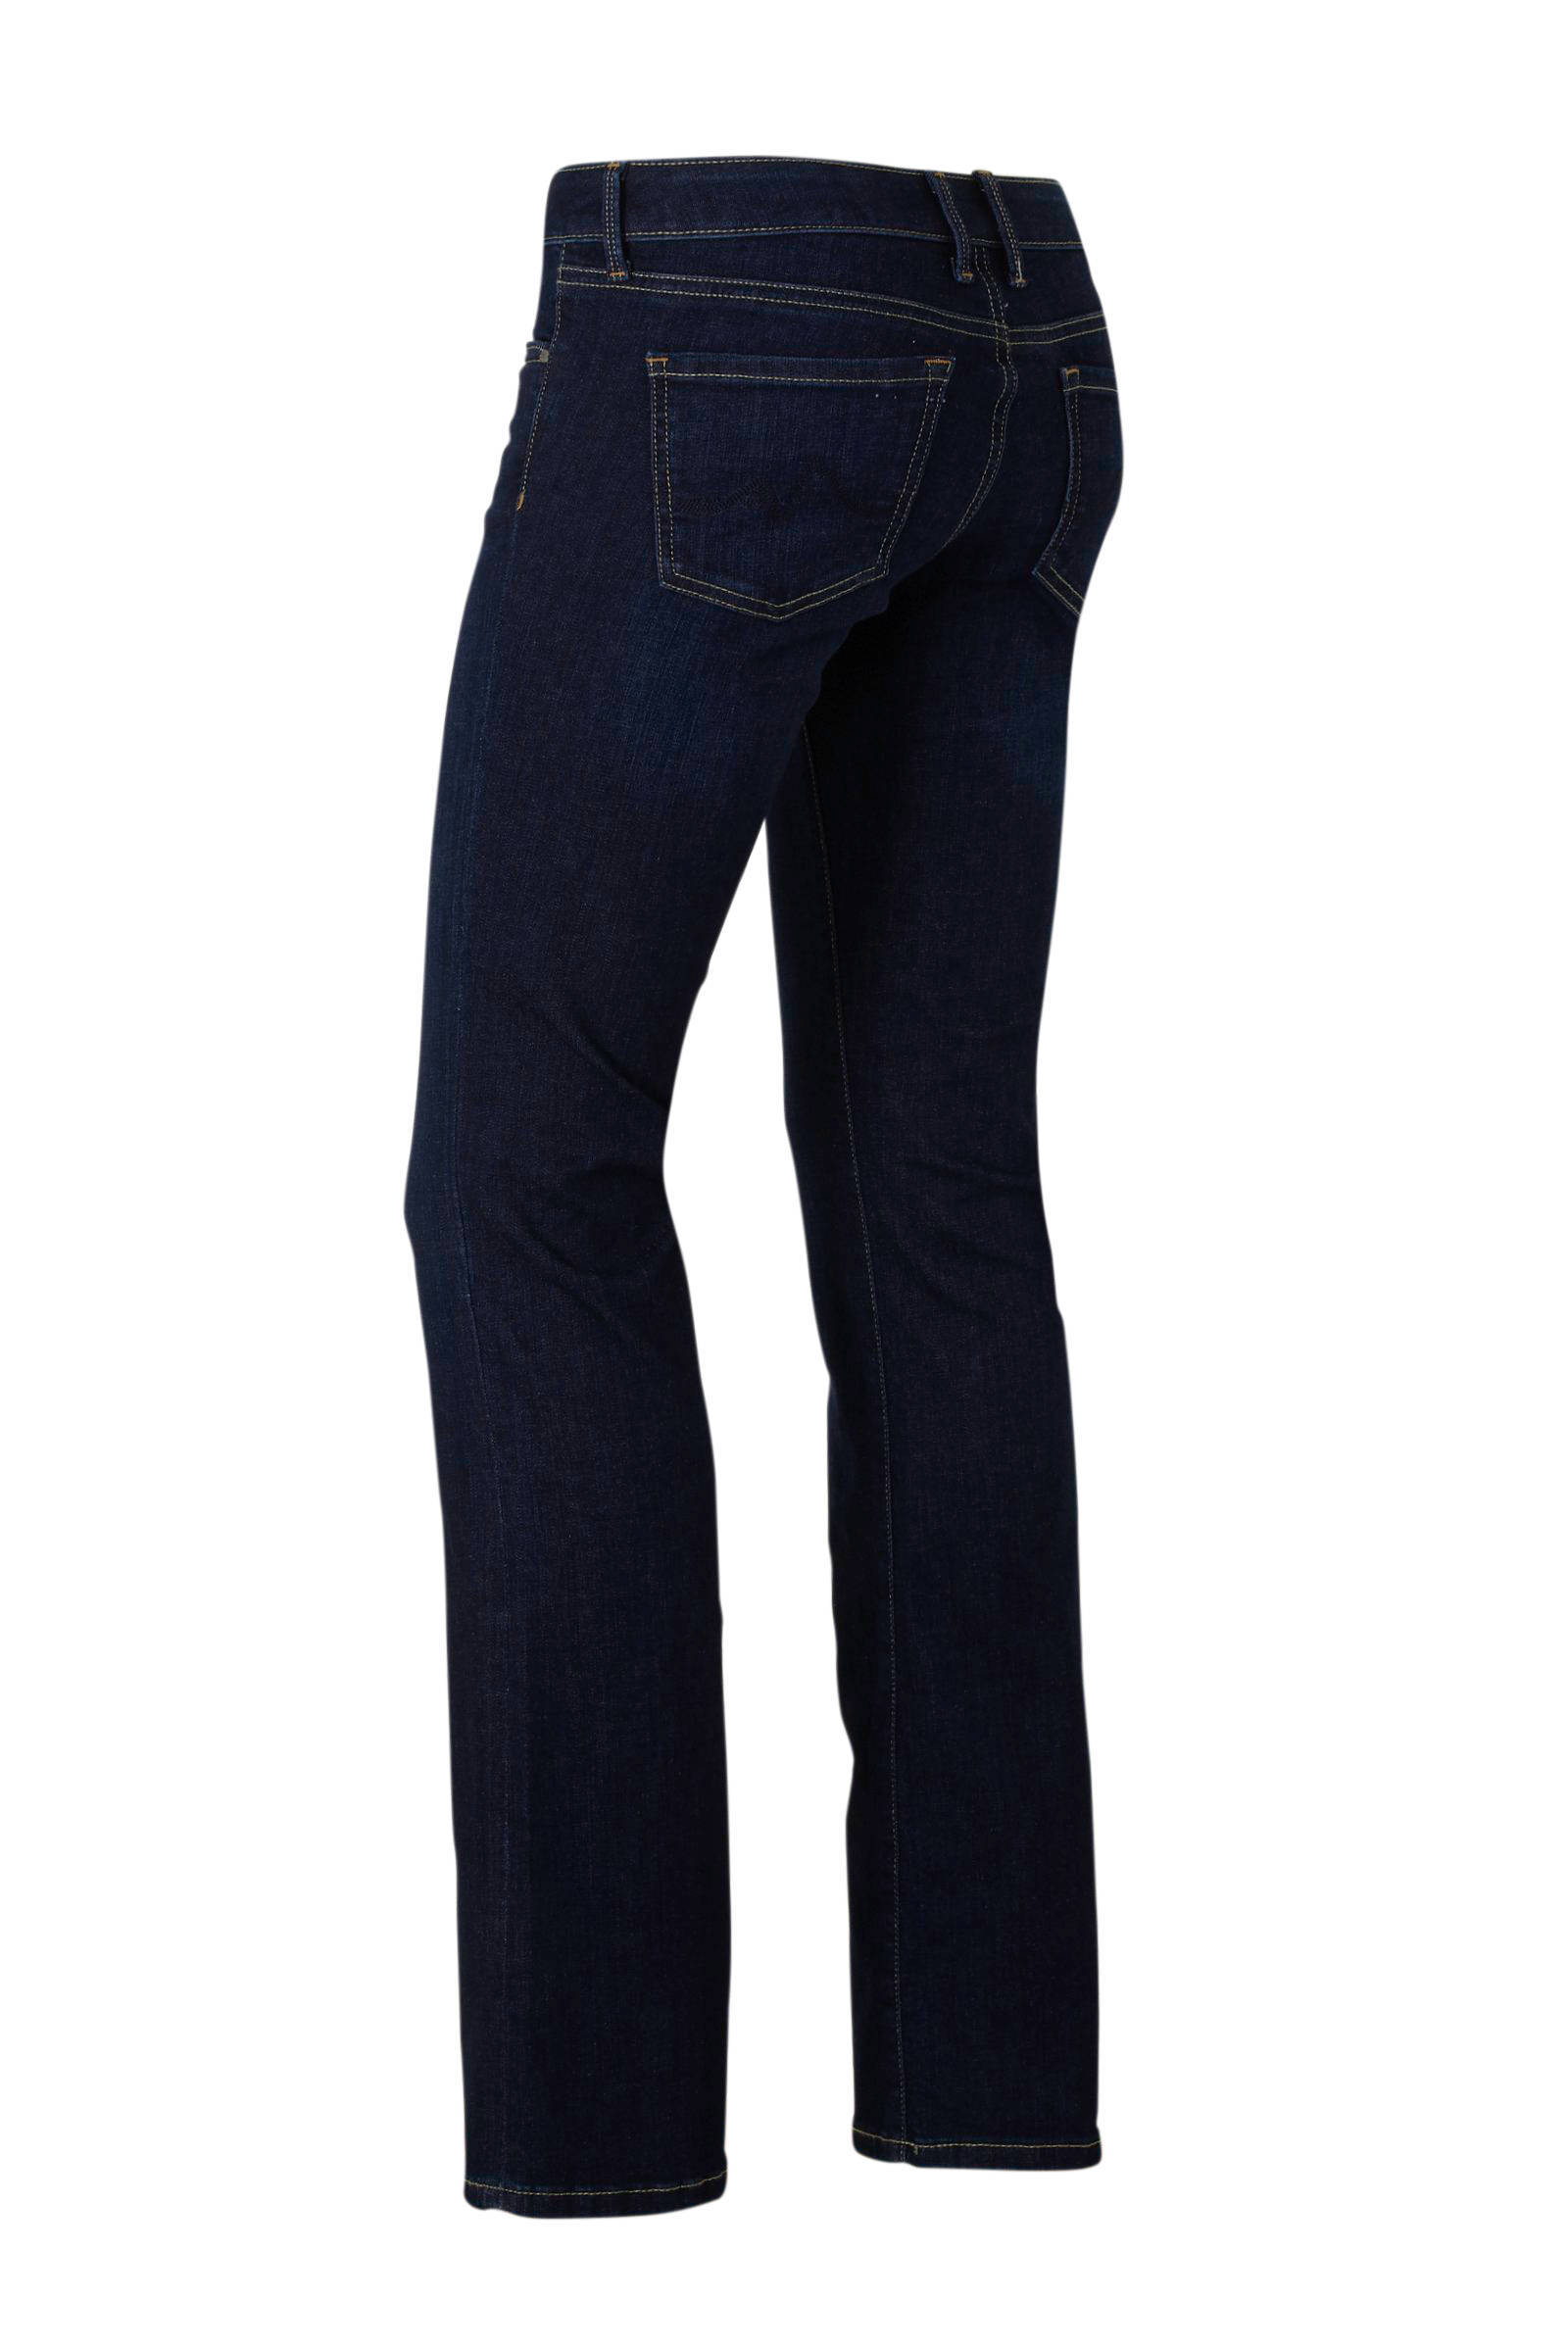 Pepe Jeans bootcut jeans Piccadilly